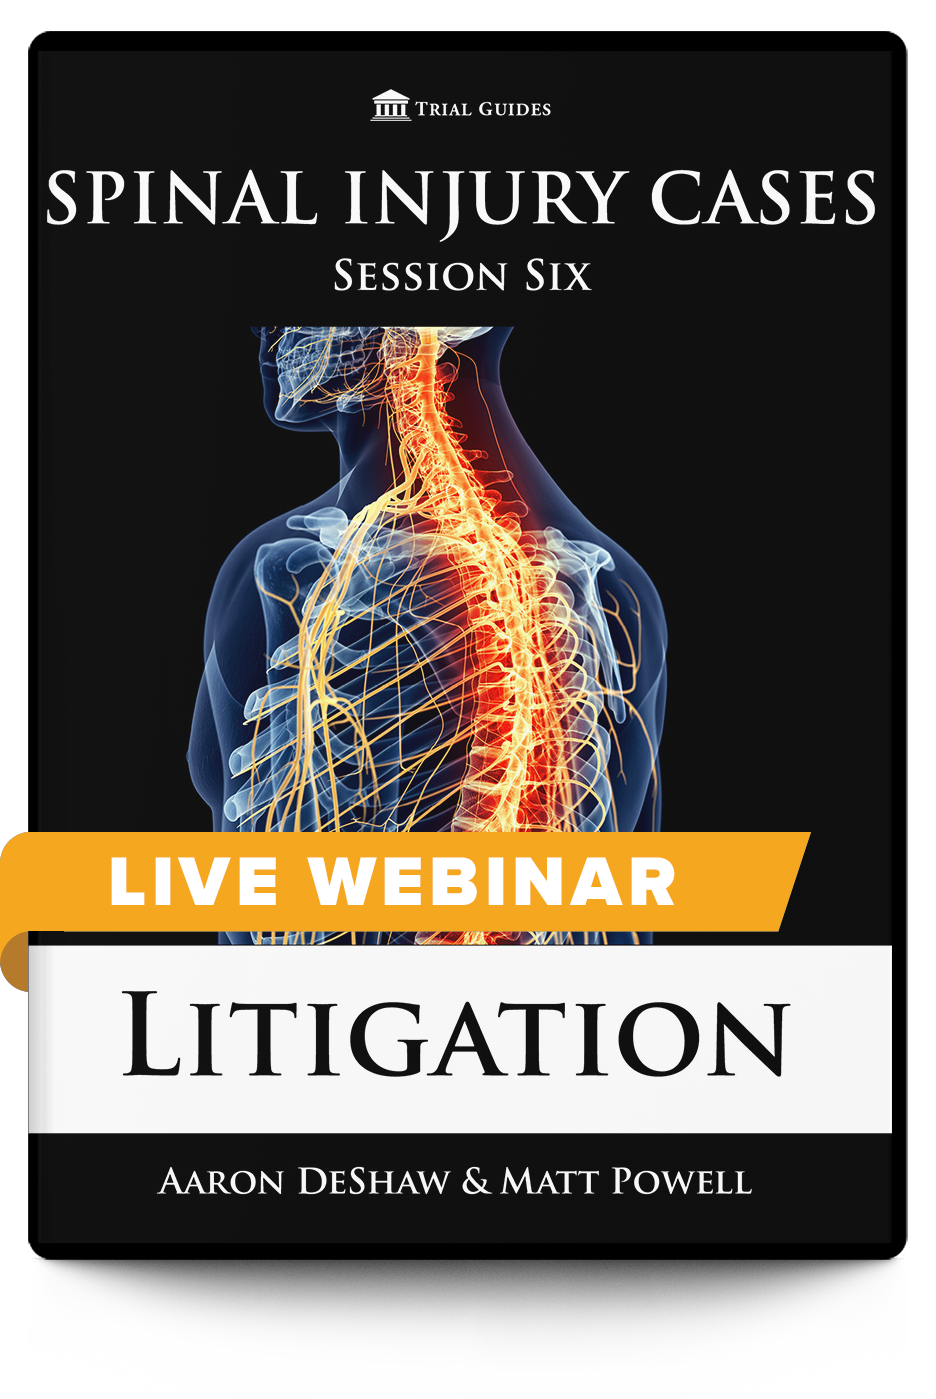 Spinal Injury Cases, Session Six: Litigation - Live Webinar